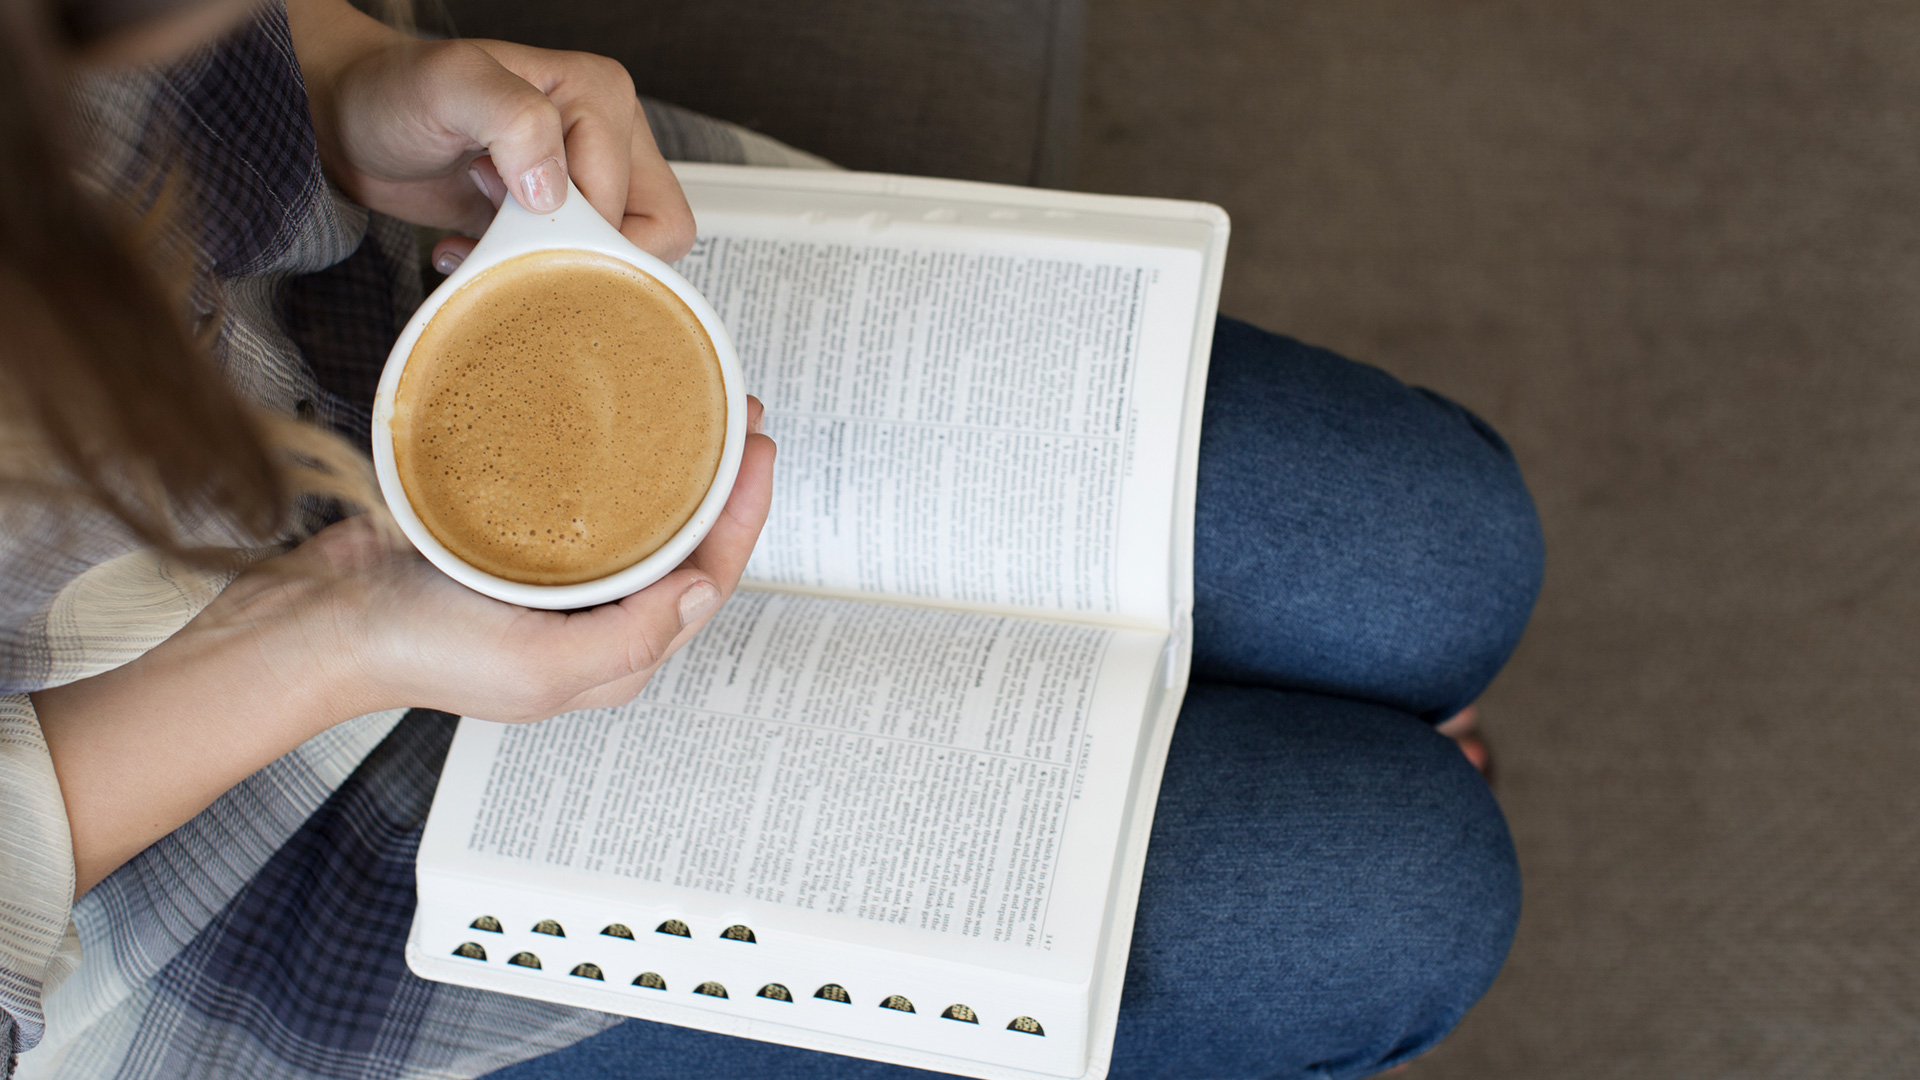 woman-with-bible-open-on-lap-and-holding-a-cup-of-coffee